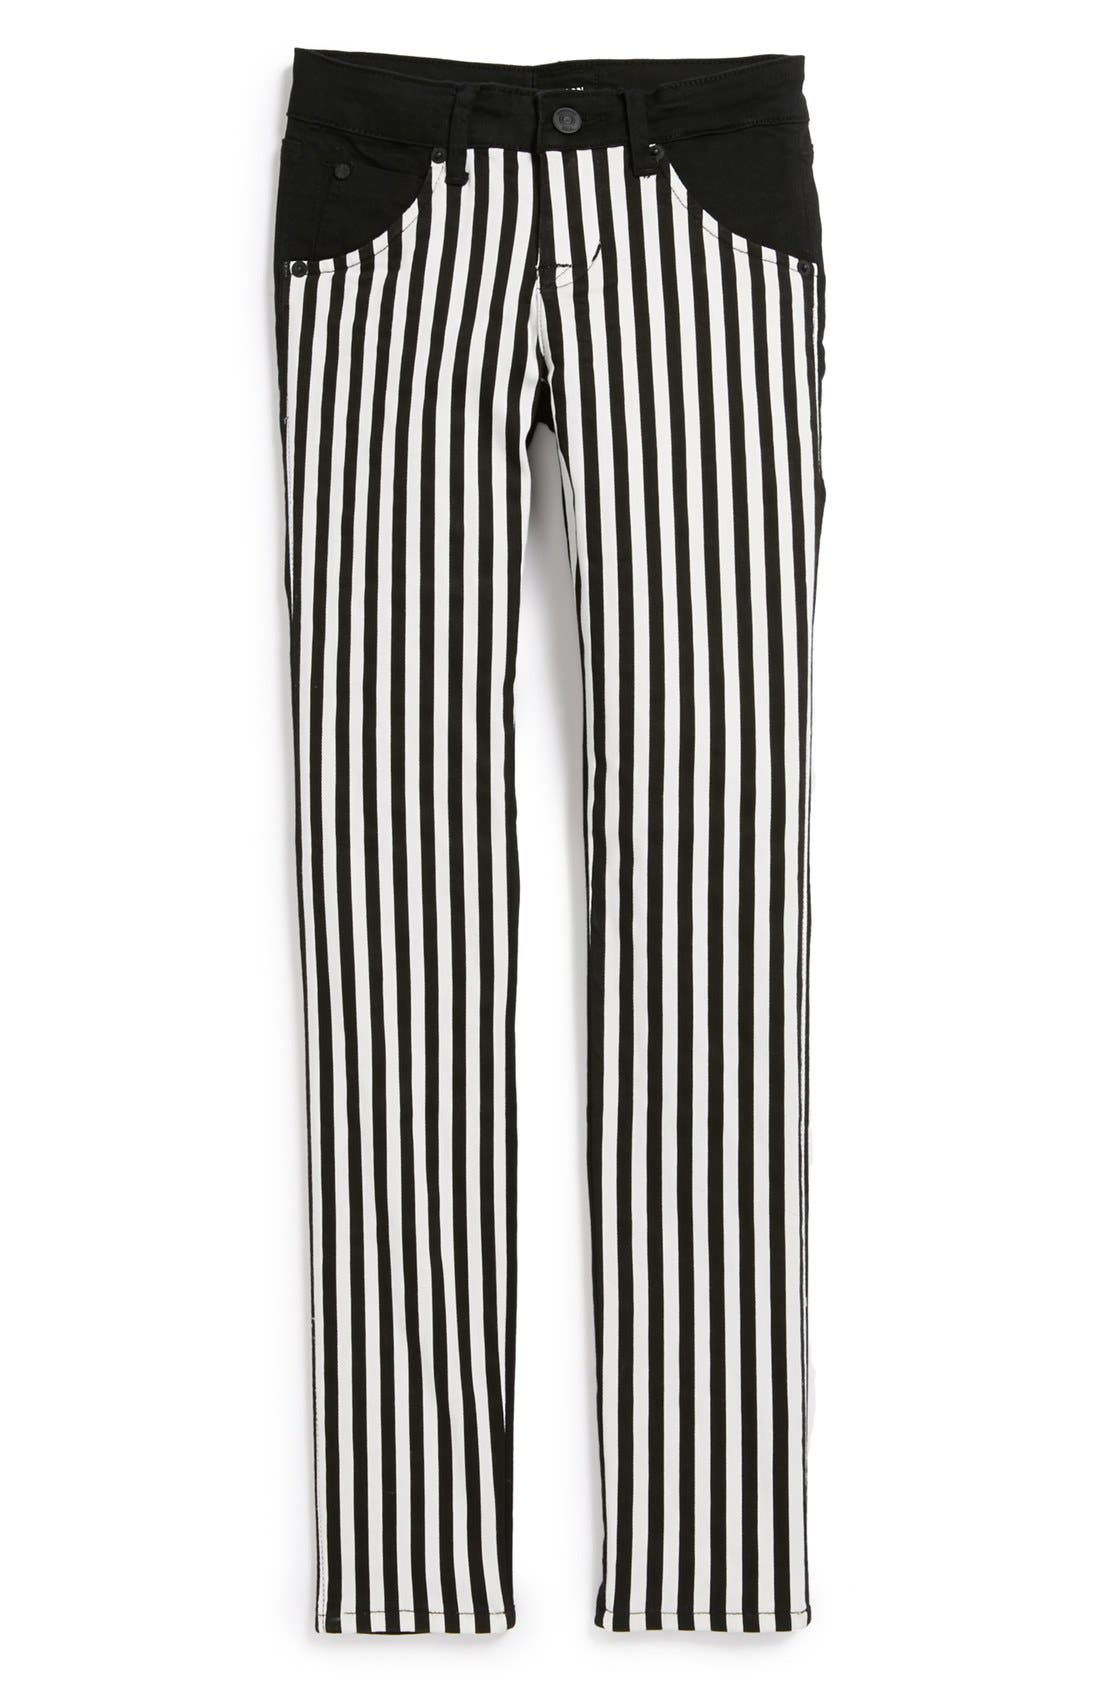 Alternate Image 1 Selected - Hudson Kids 'Collin' Skinny Jeans (Vice Versa) (Big Girls)